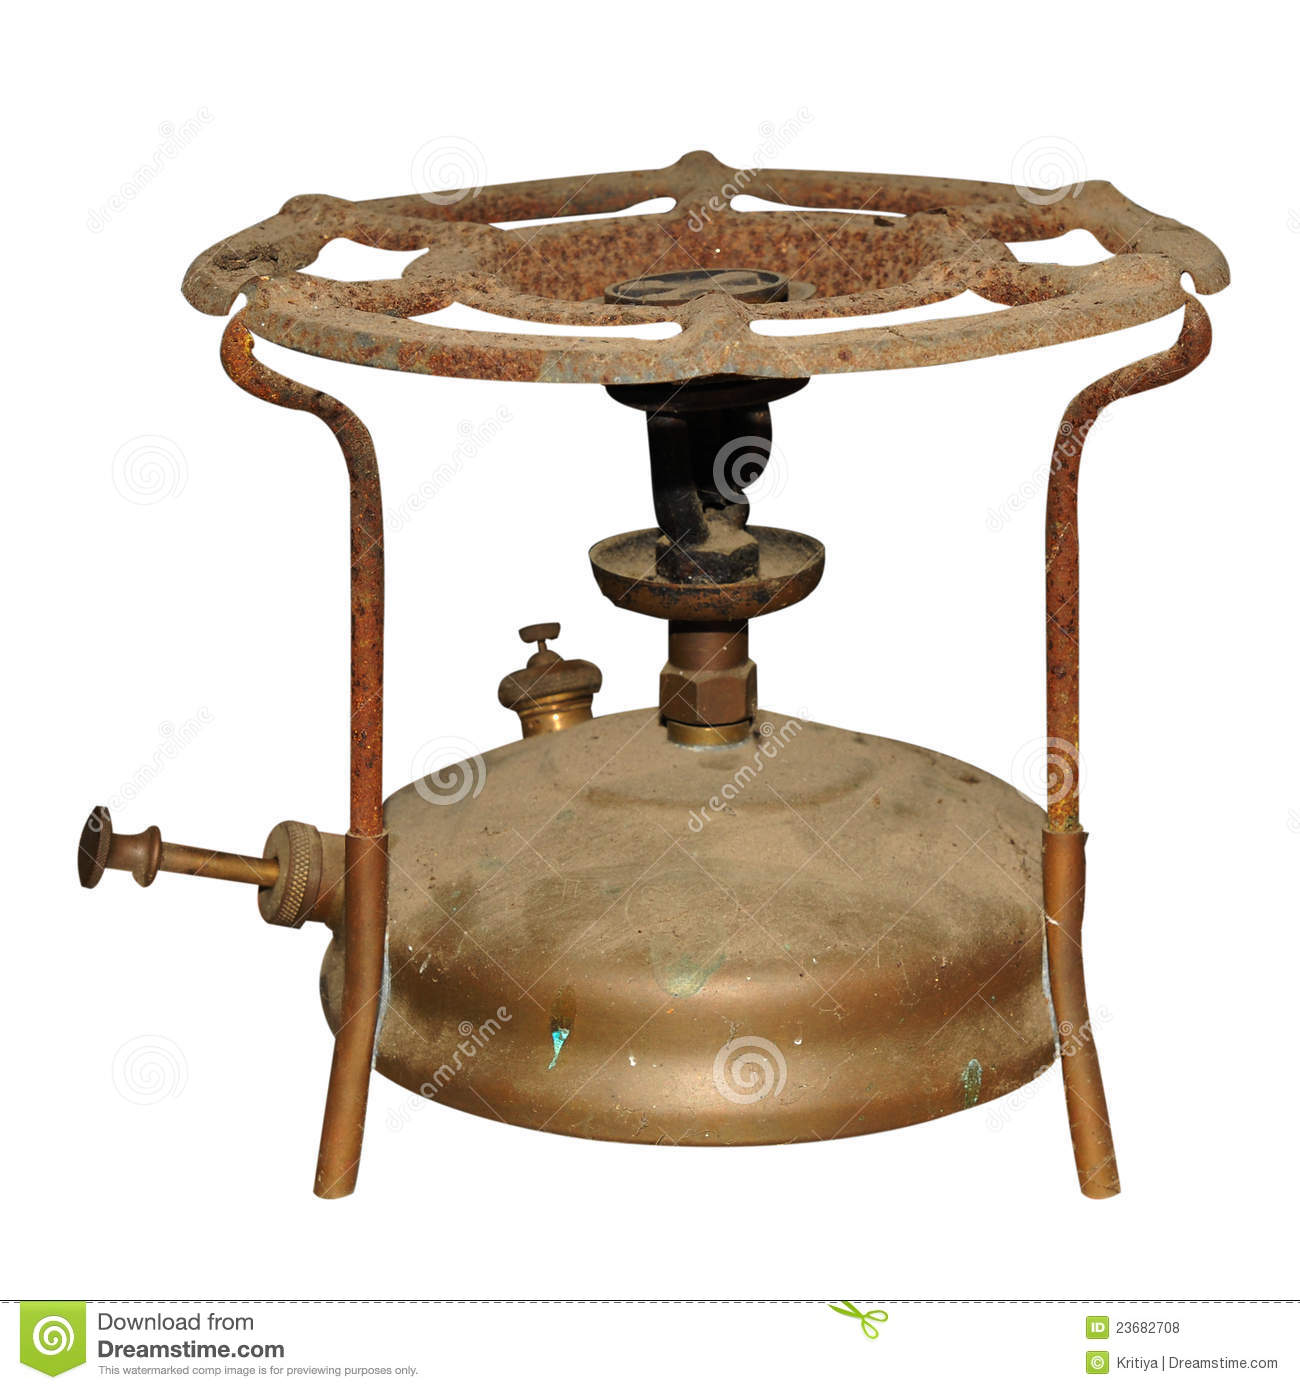 kitchen stove oil with Royalty Free Stock Photos Old Gas Stove Image23682708 on Fast Homemade Waste Oil Heater Plans further Stock Illustration Concept Button Adjusting Minimizing Potential Risk Shows Three Levels Management Illustration Image45721128 also Moroccan Red Lentil Soup further Drumconefunnel also Fire Safety In Kitchen.